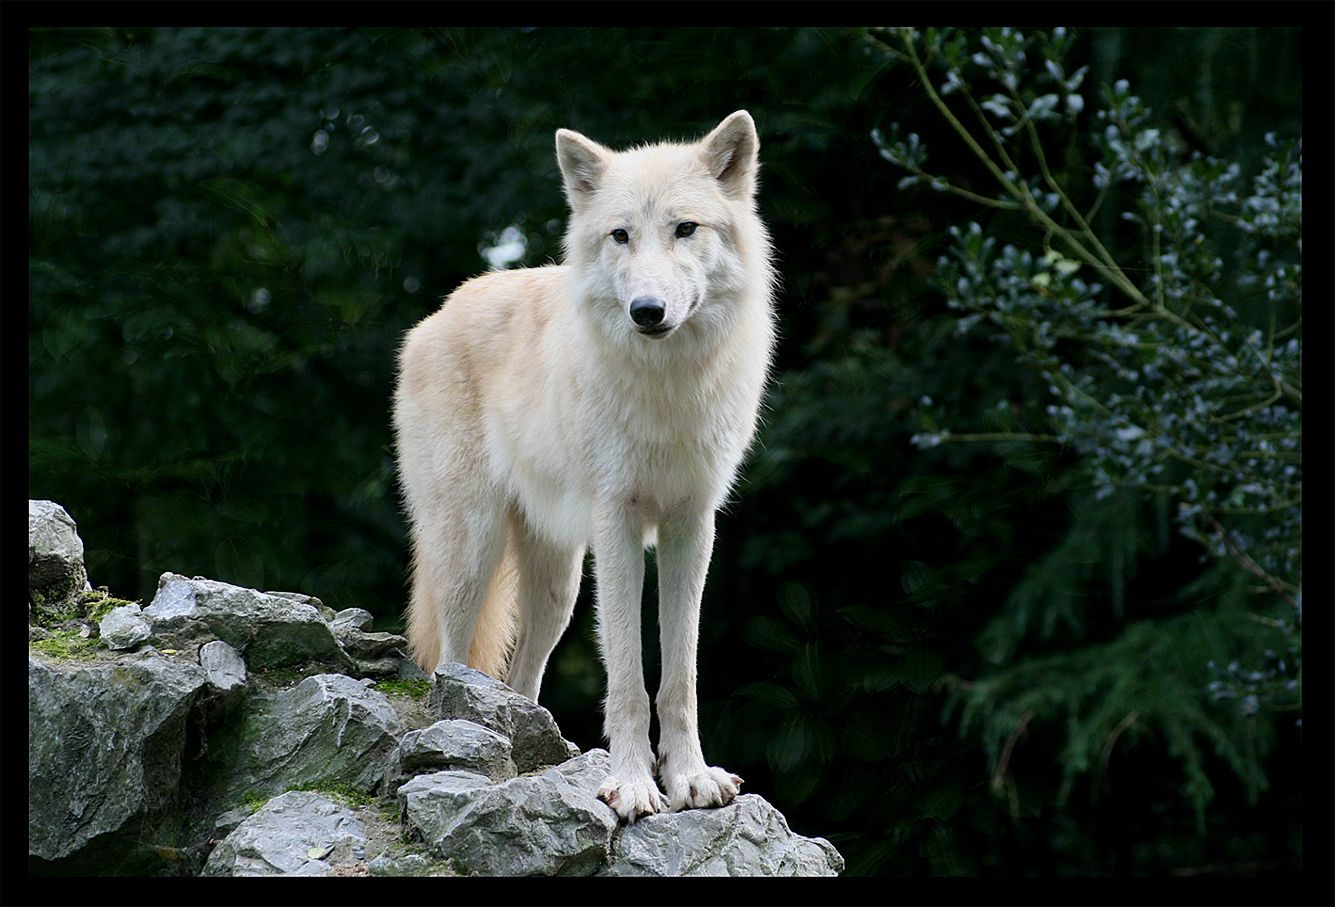 pictures of white wolves | The white wolf by Lunchi